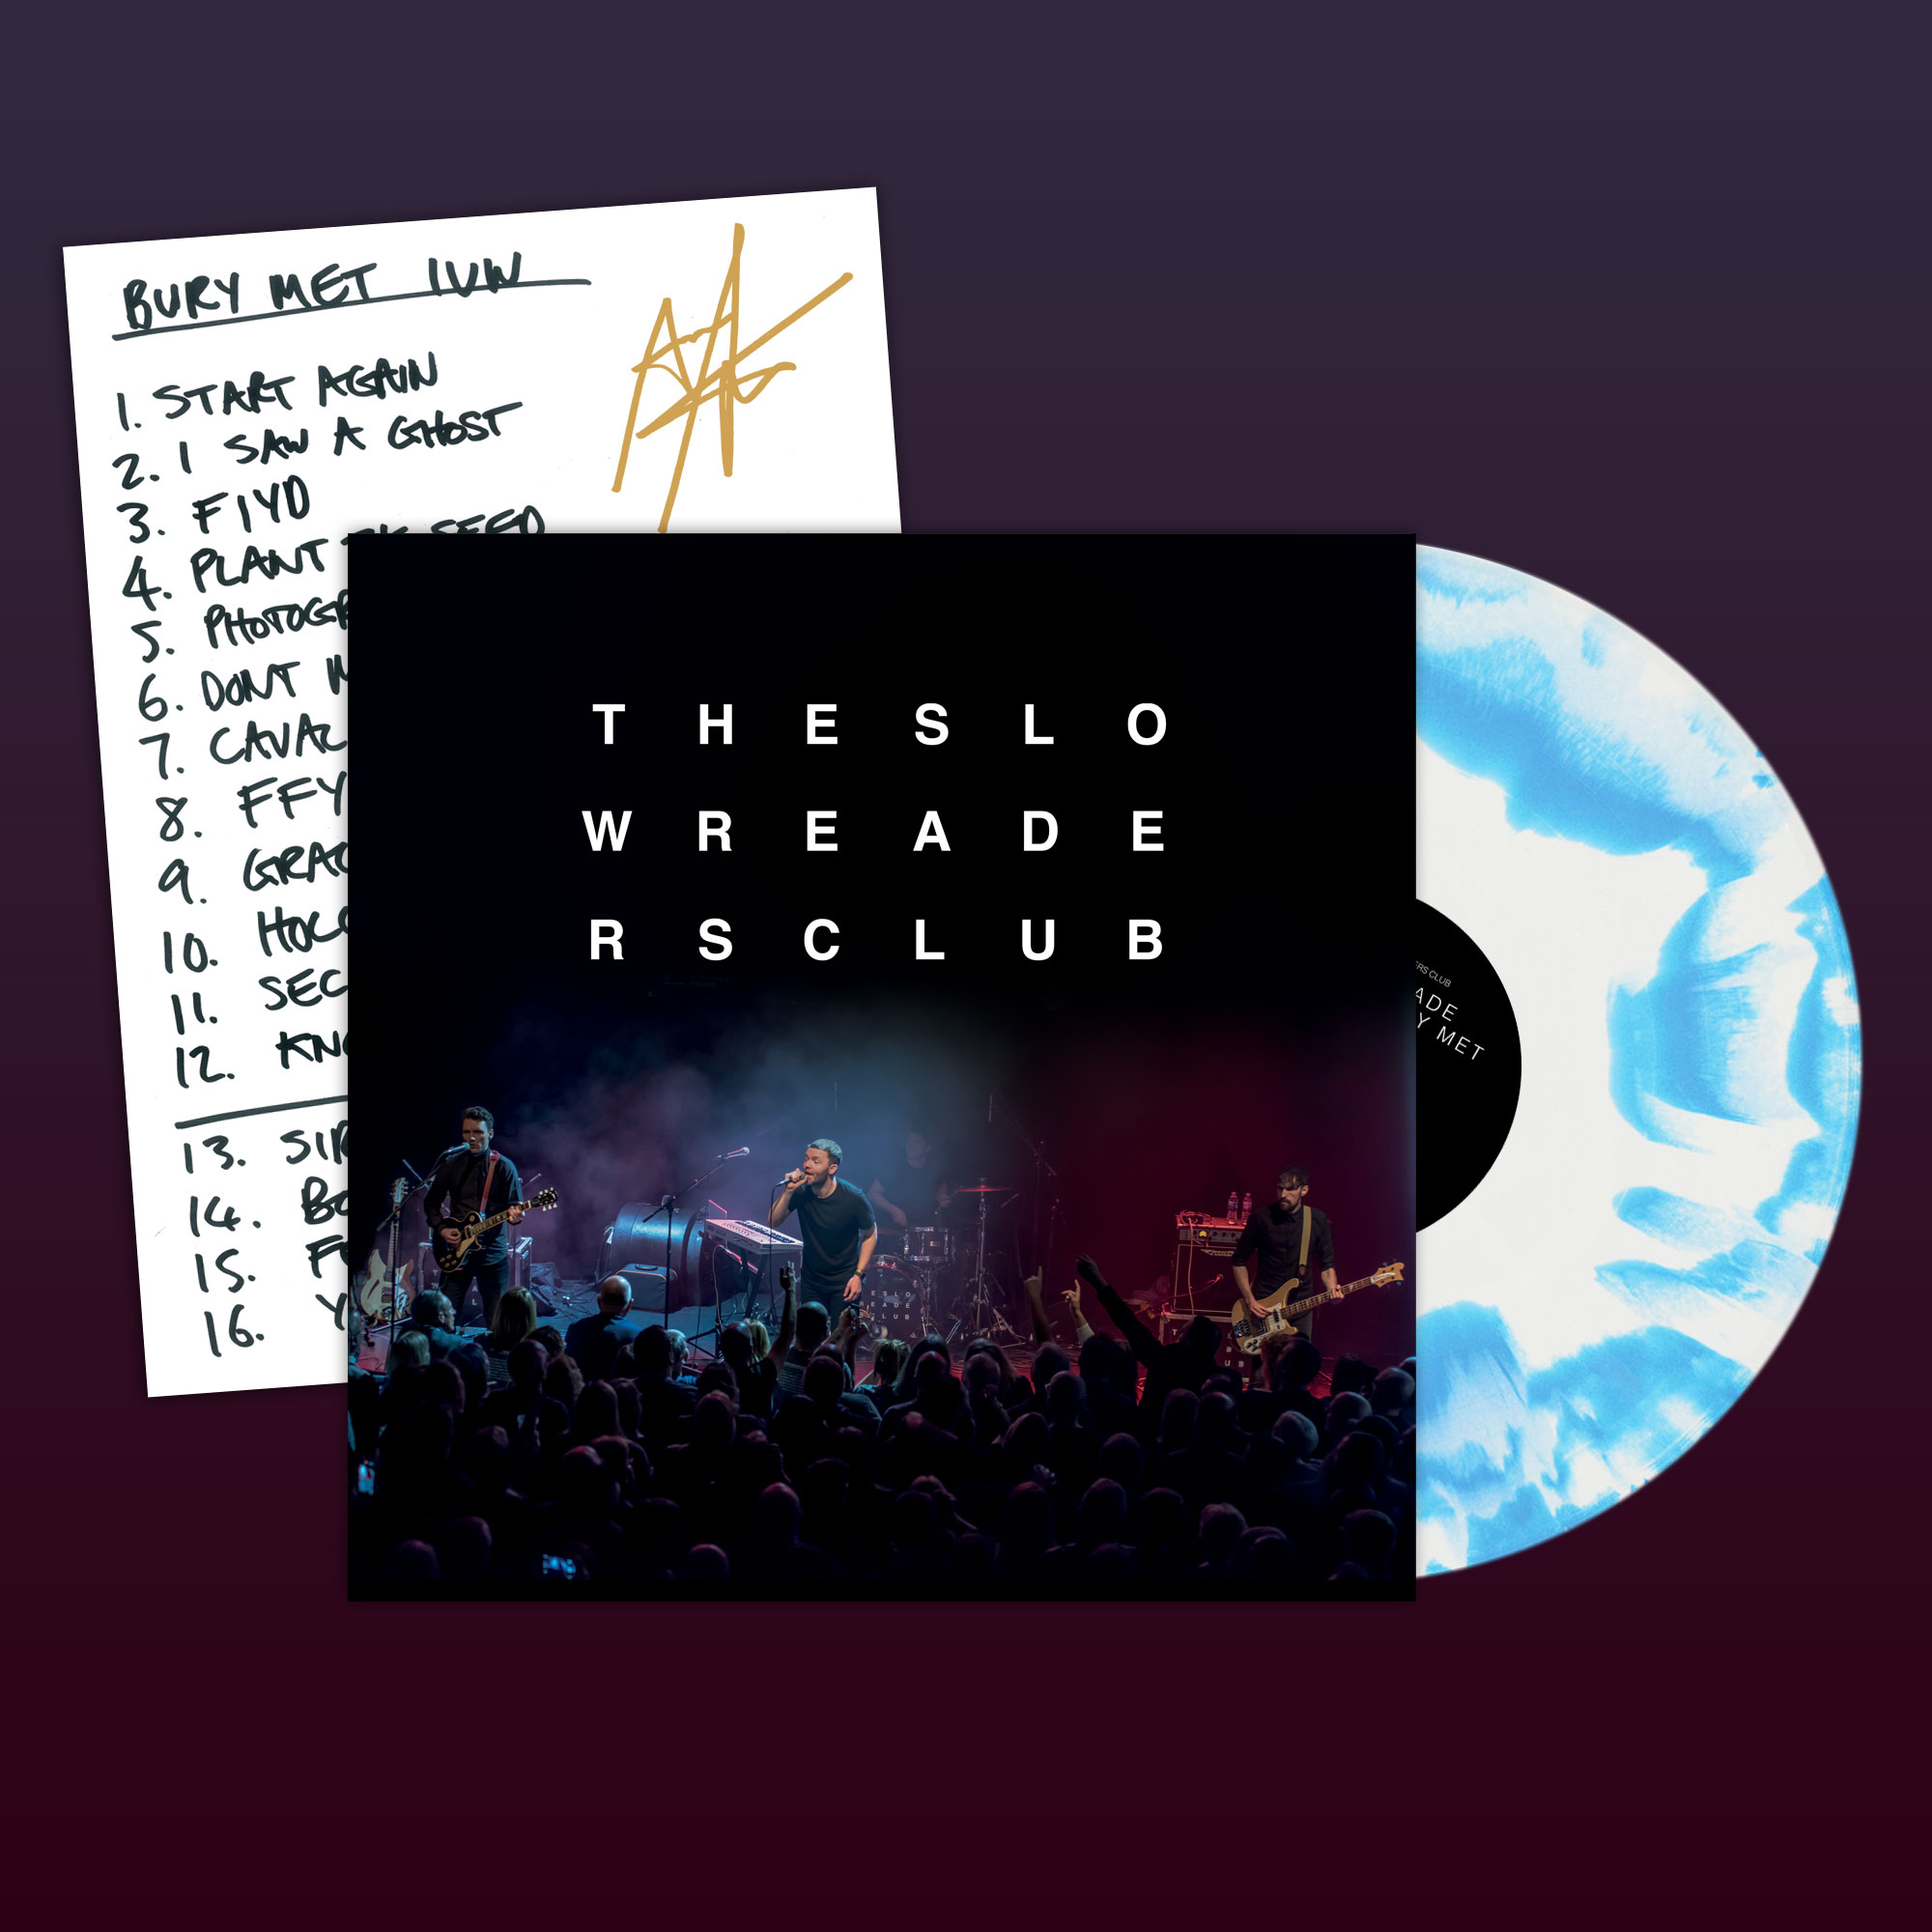 "Cavalcade: Live at Bury Met 12"" + Signed Setlist - The Slow Readers Club"